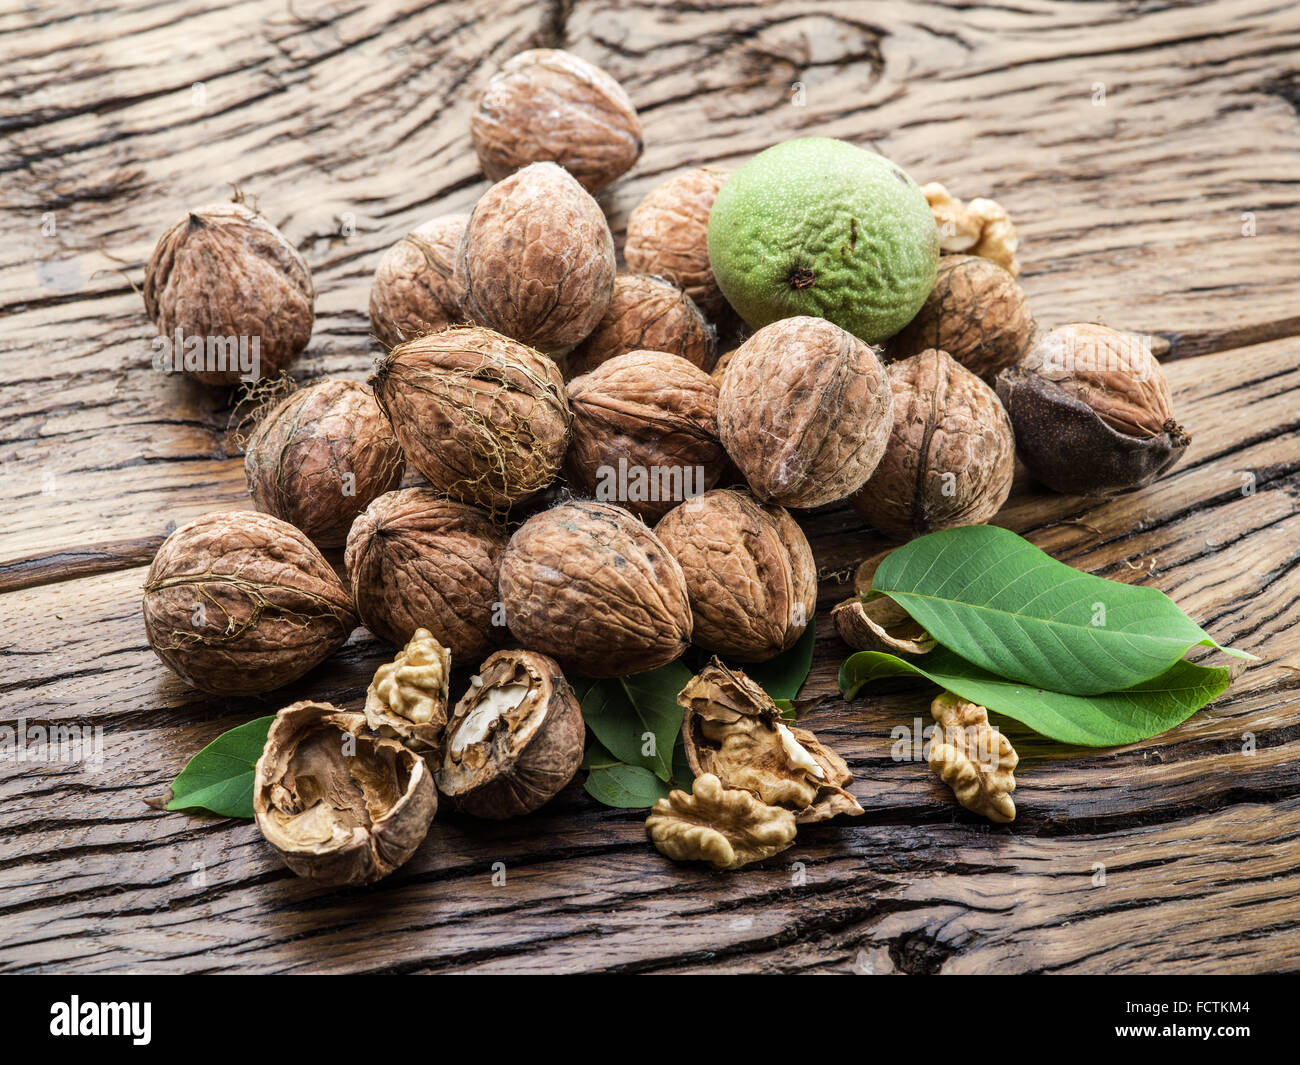 Walnuts on the wooden table. The autumn harvest. - Stock Image